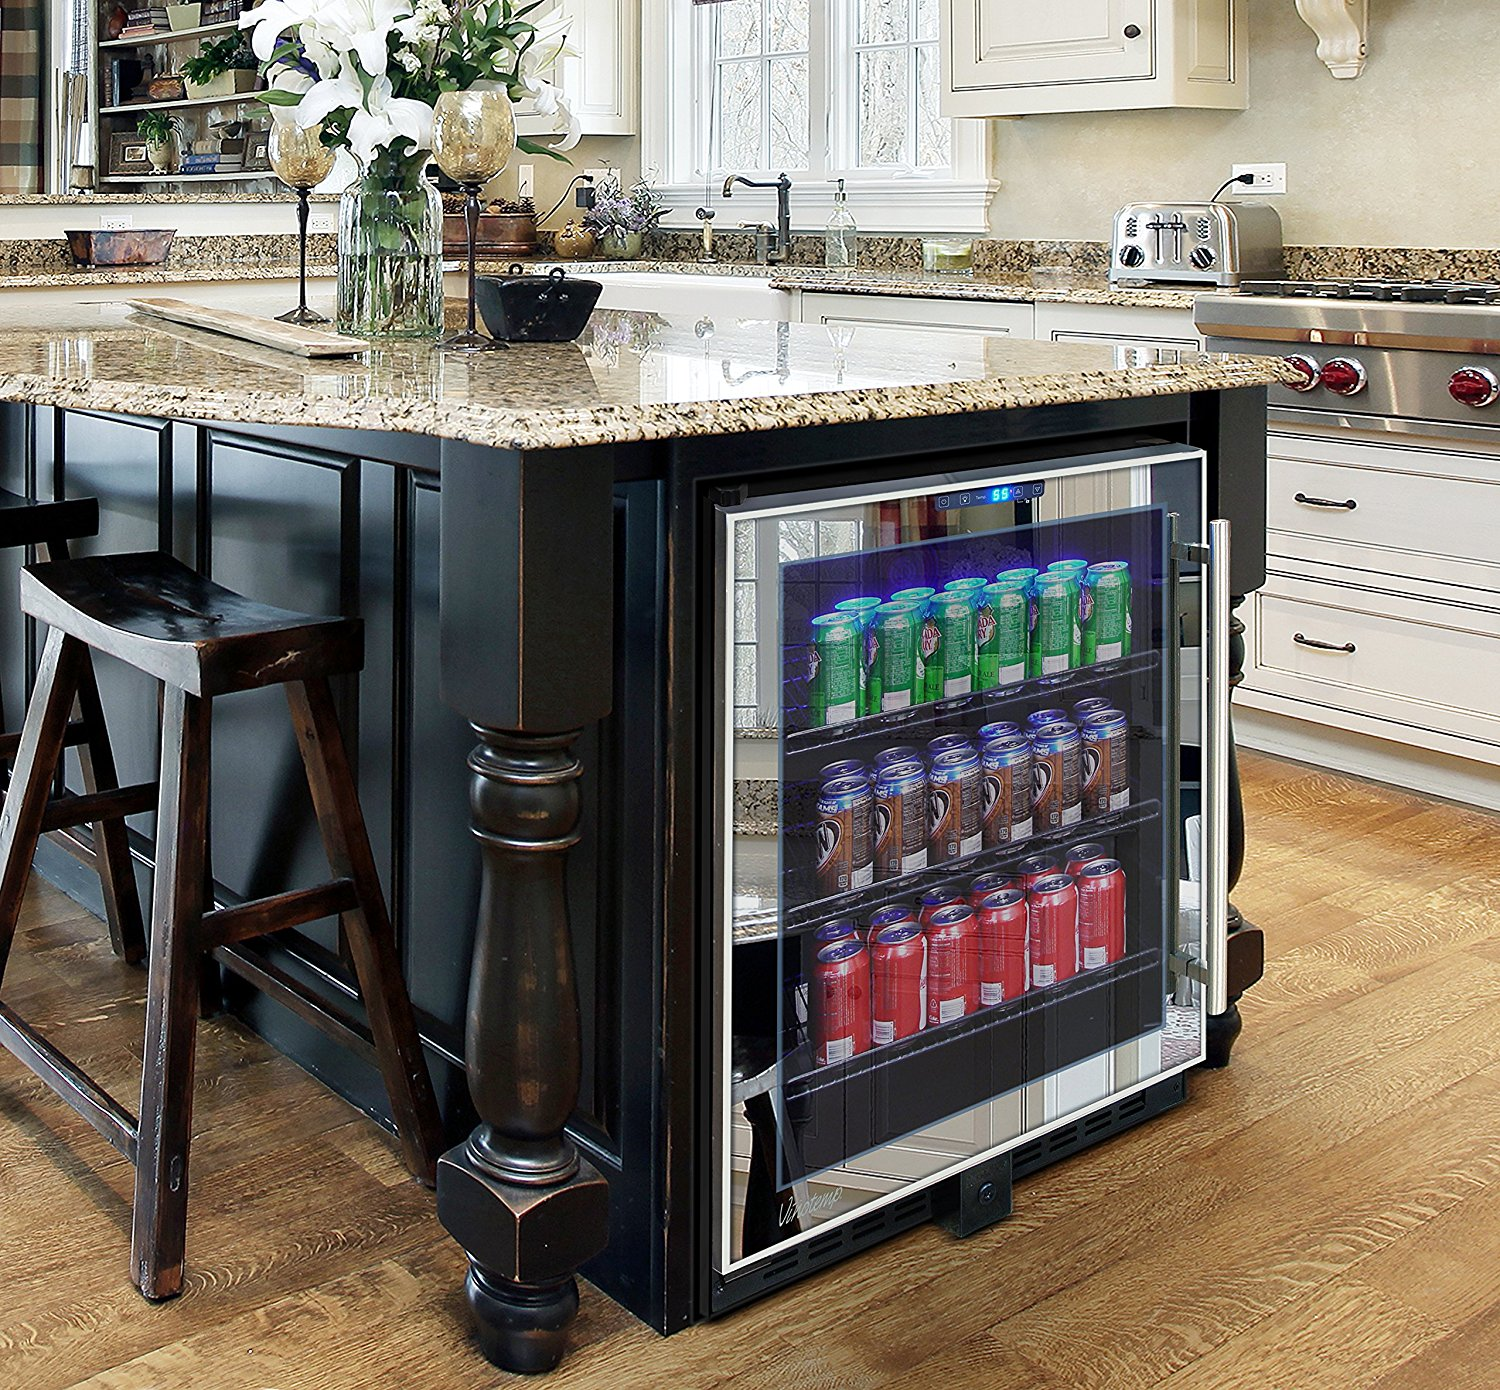 Mirrored Touch Screen Beverage Cooler